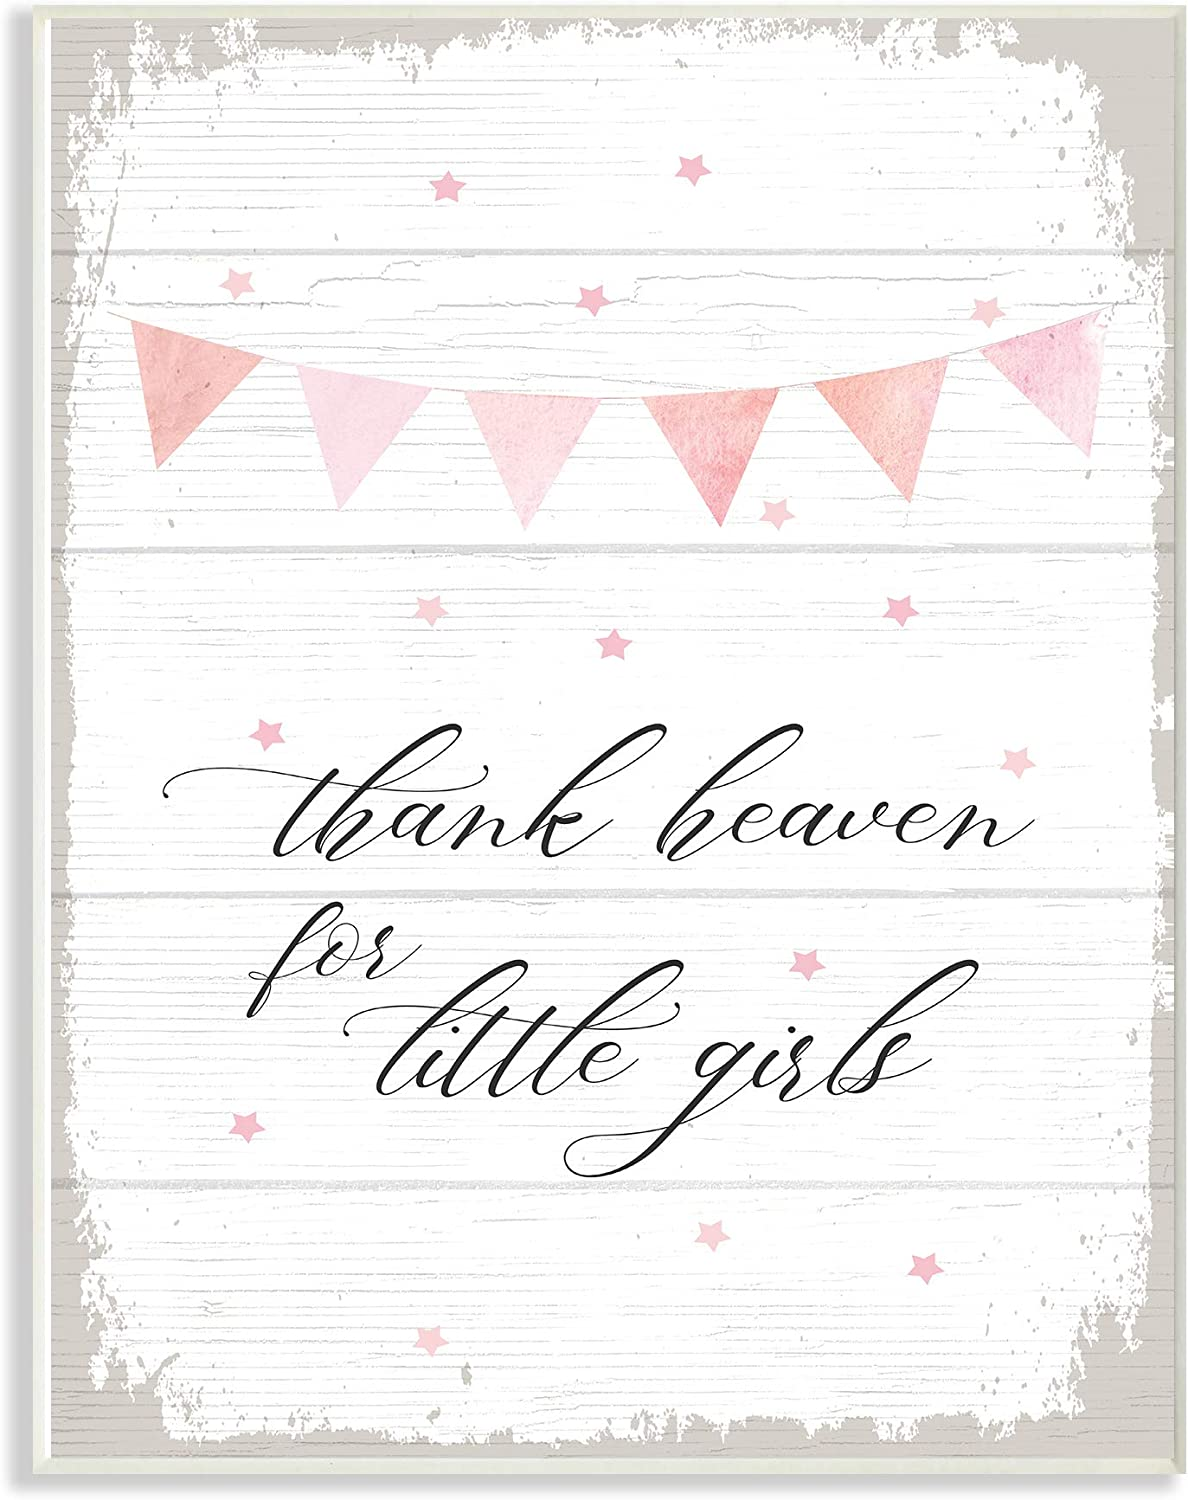 The Kids Room by Stupell Pink Bunting Thank Heaven for Little Girls Planked Look Wall Plaque Art, 13 X 19, Multi-color